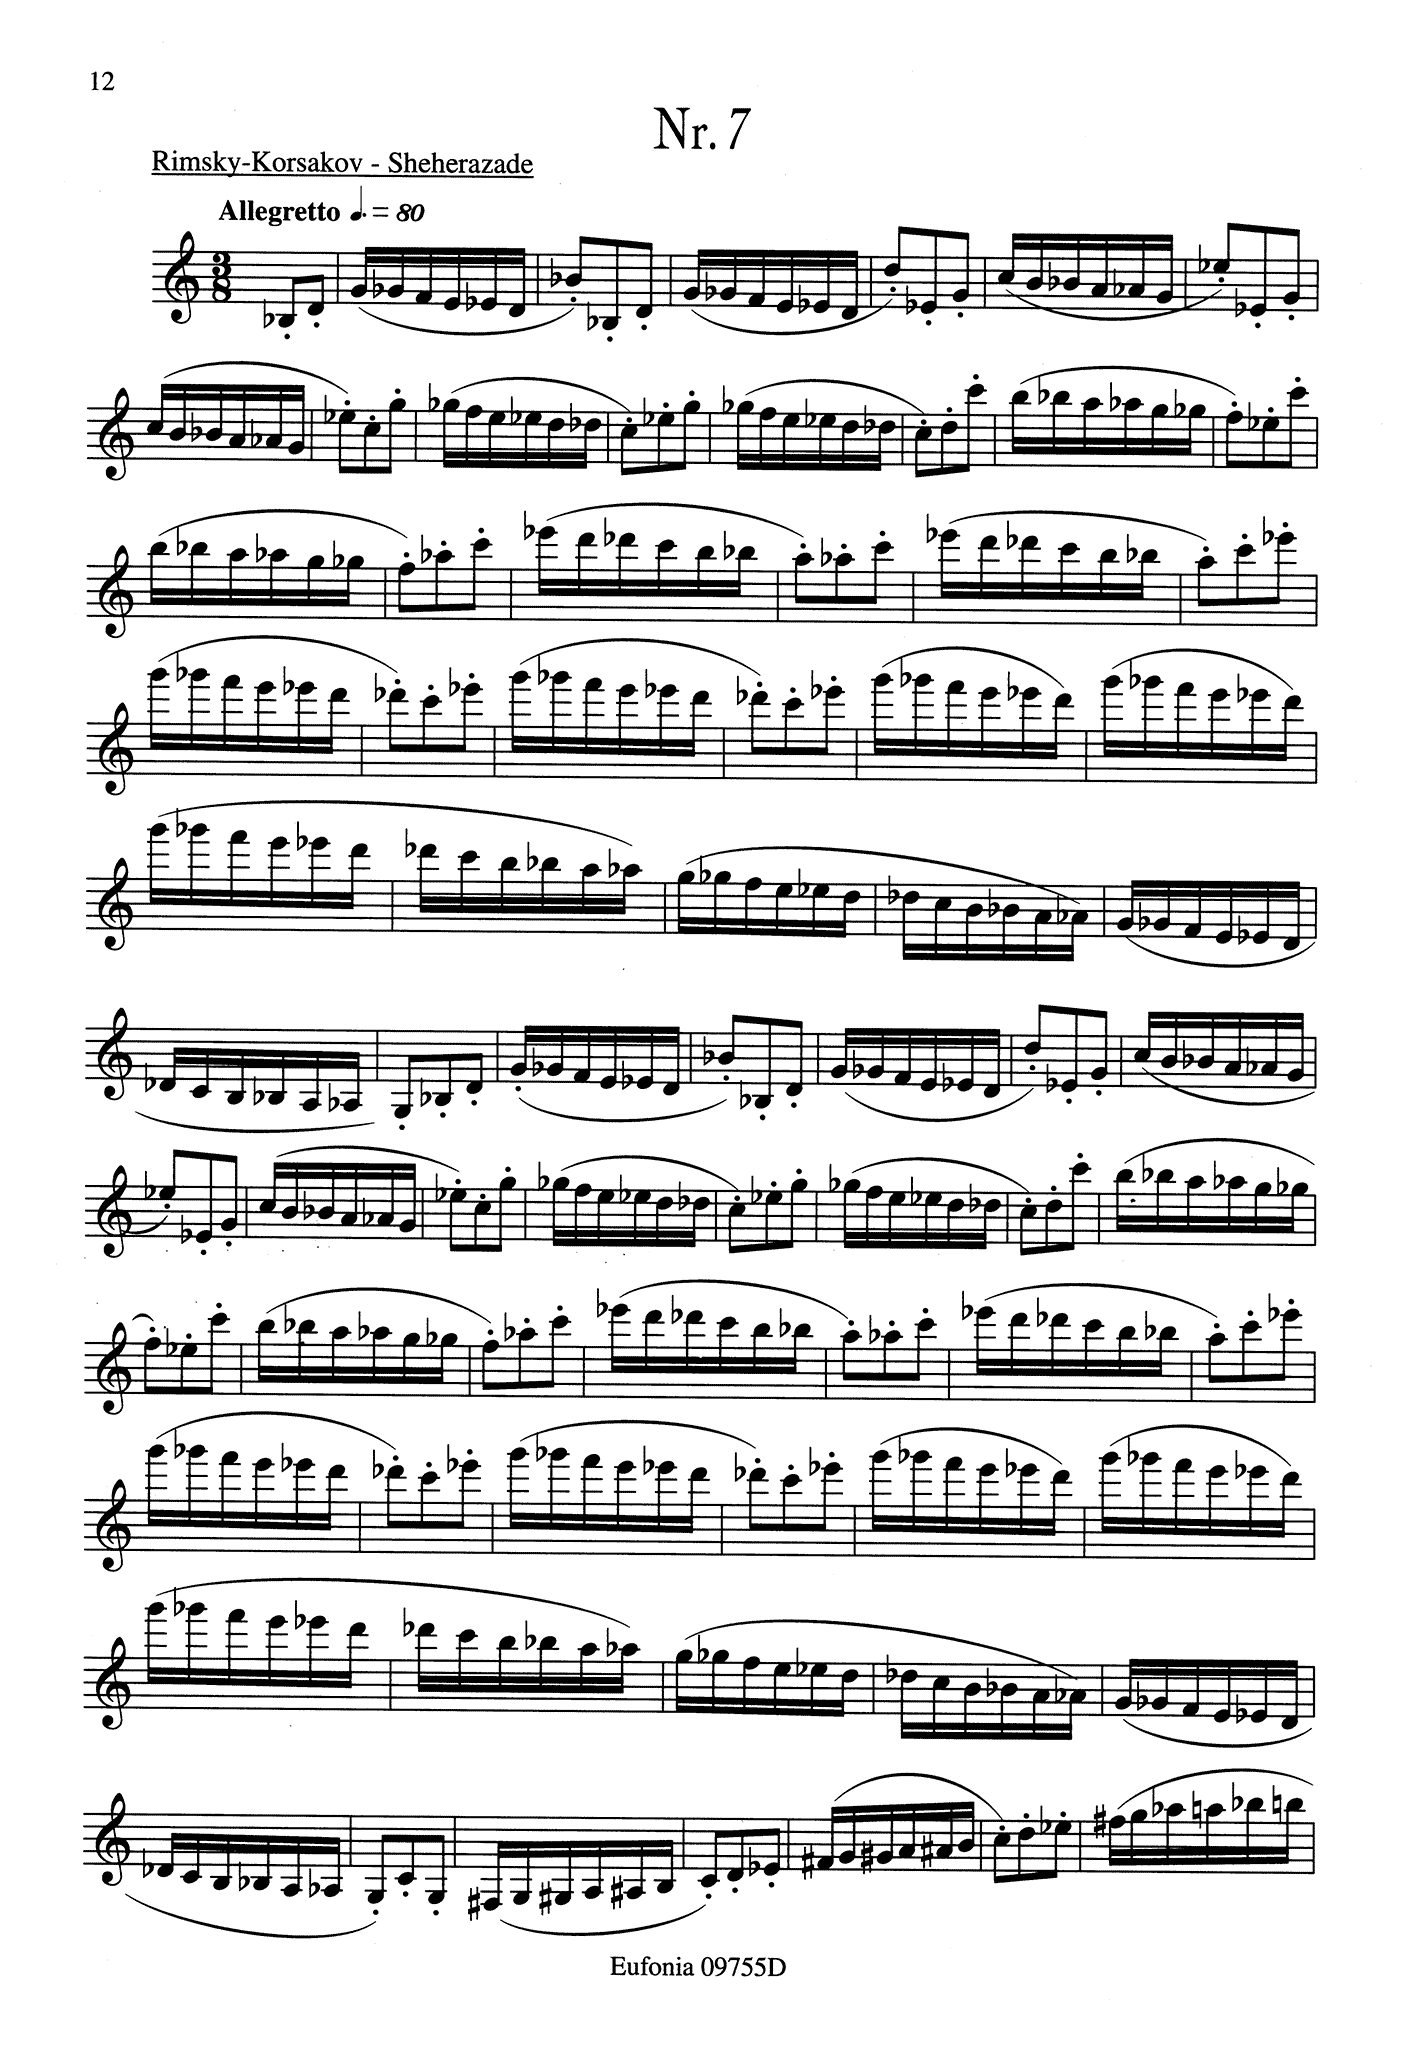 23 Studies for Clarinet Page 12